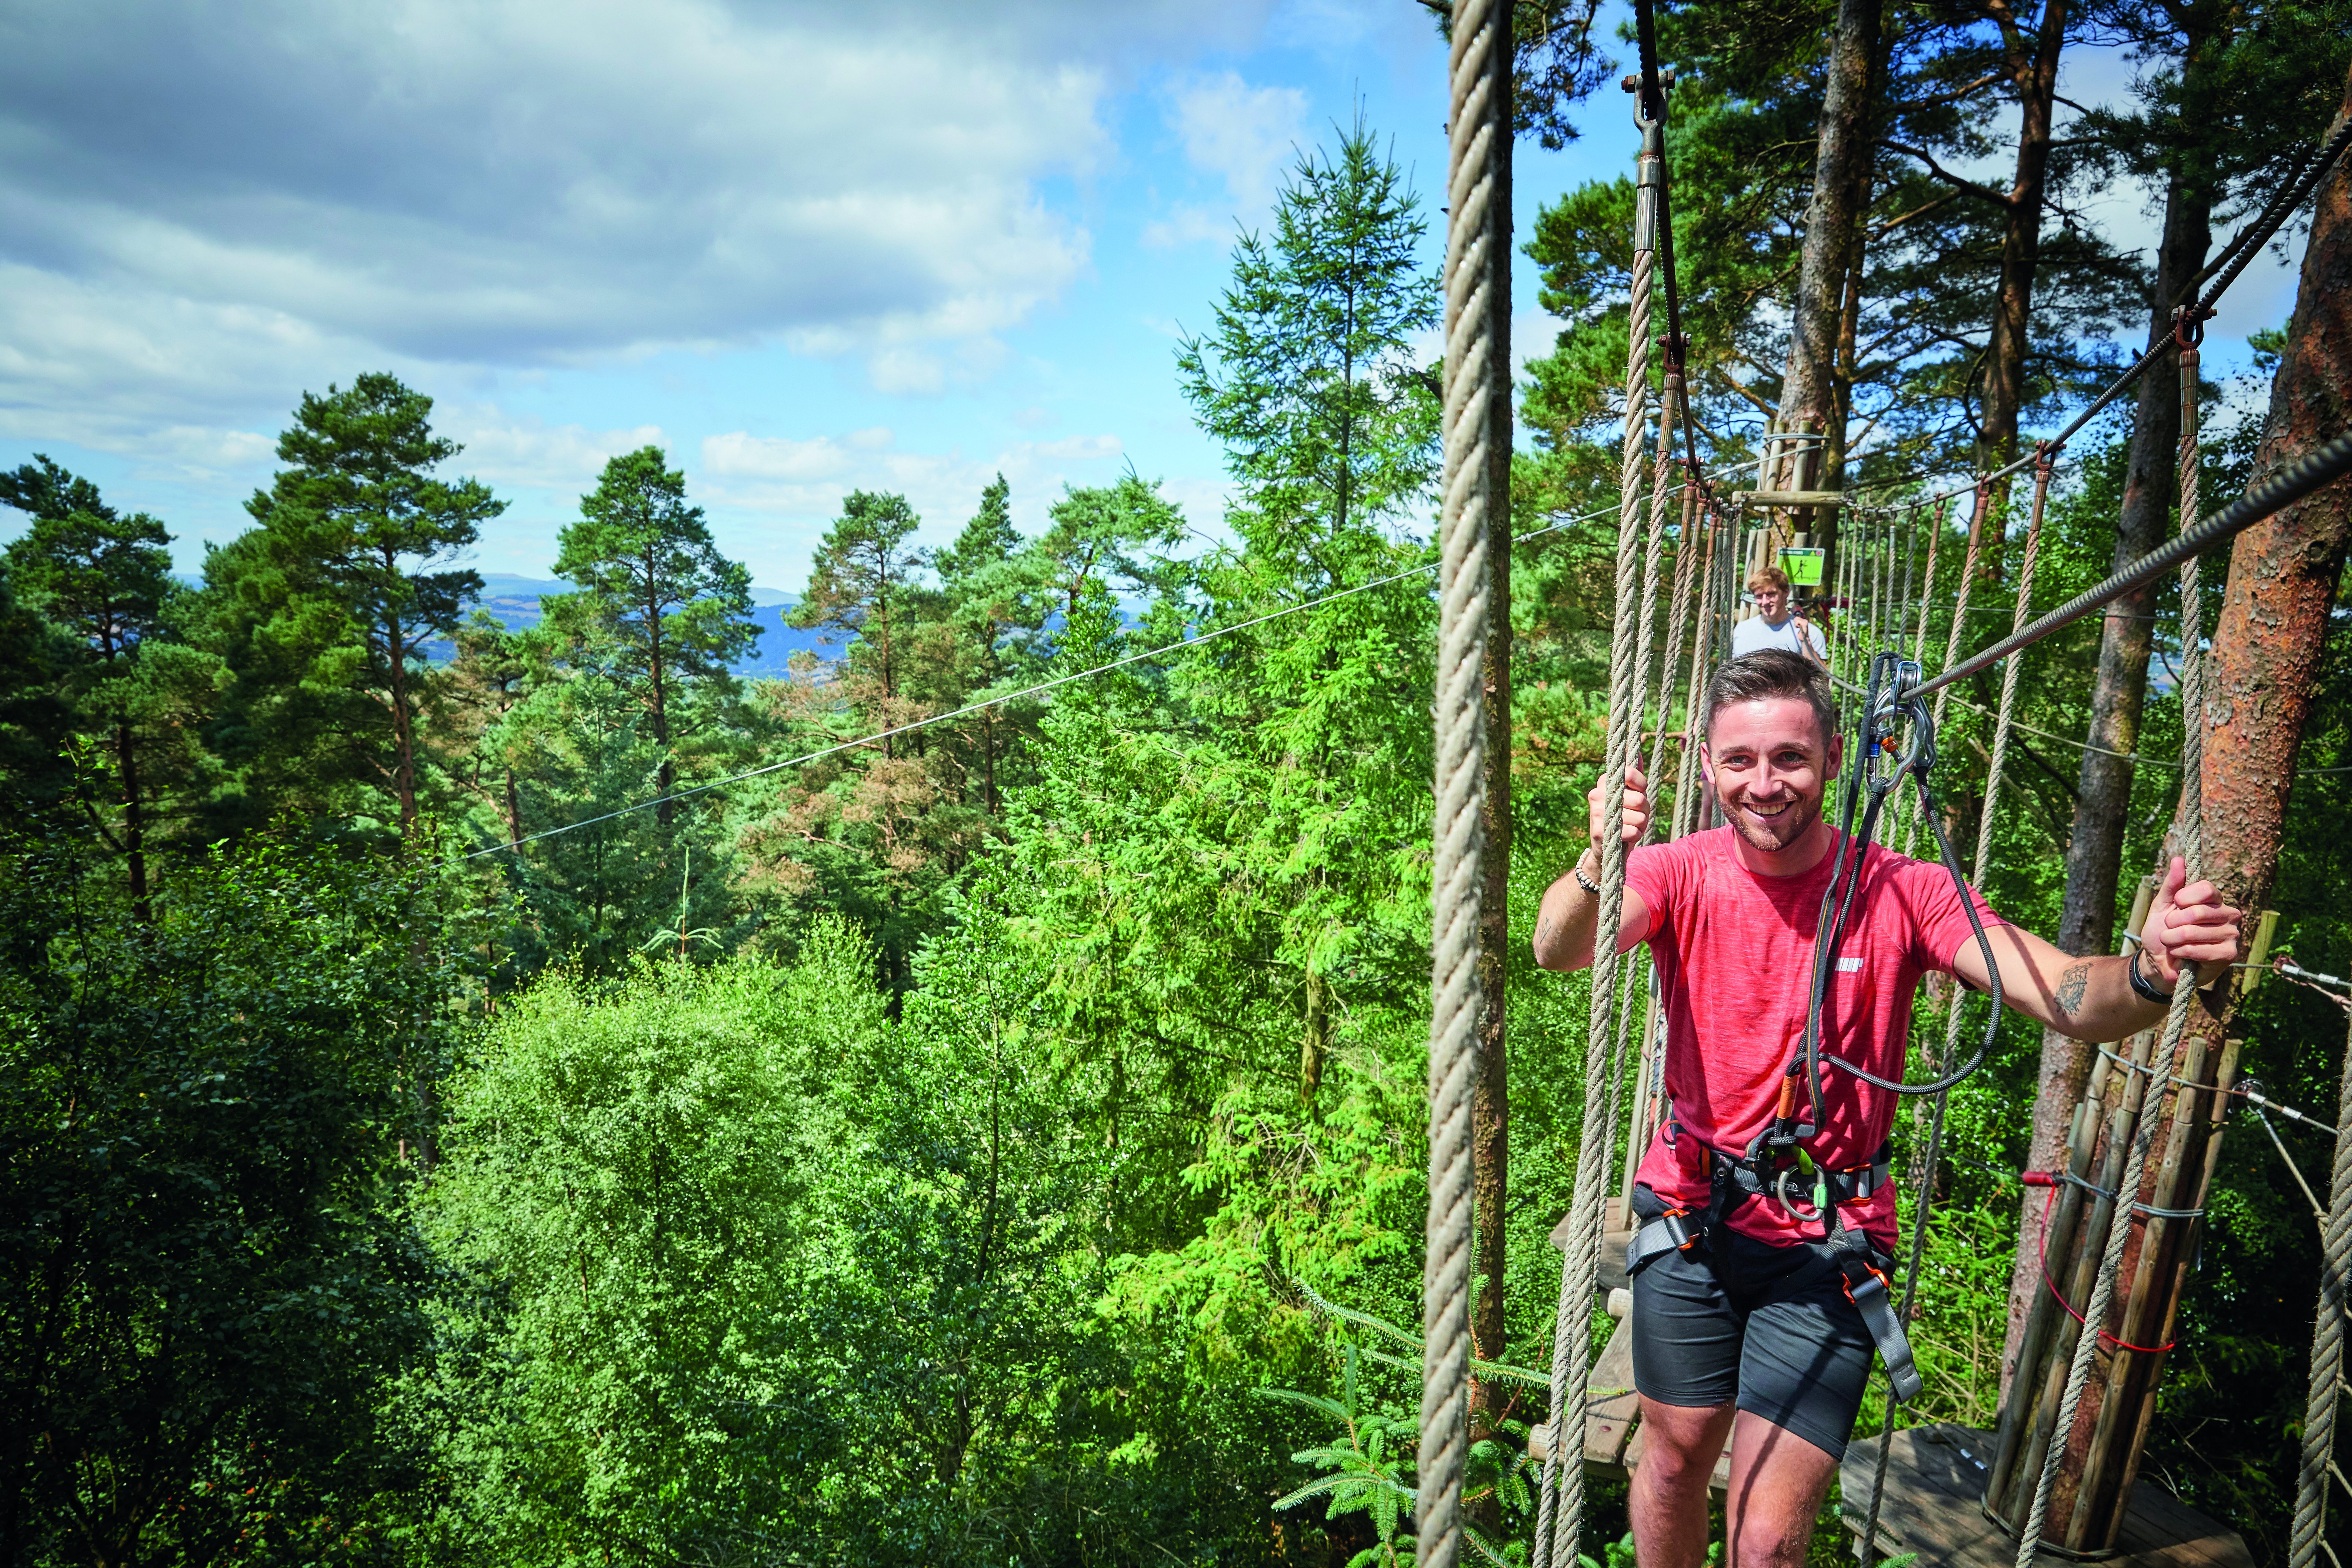 Man in red t-shirt on a Go Ape crossing